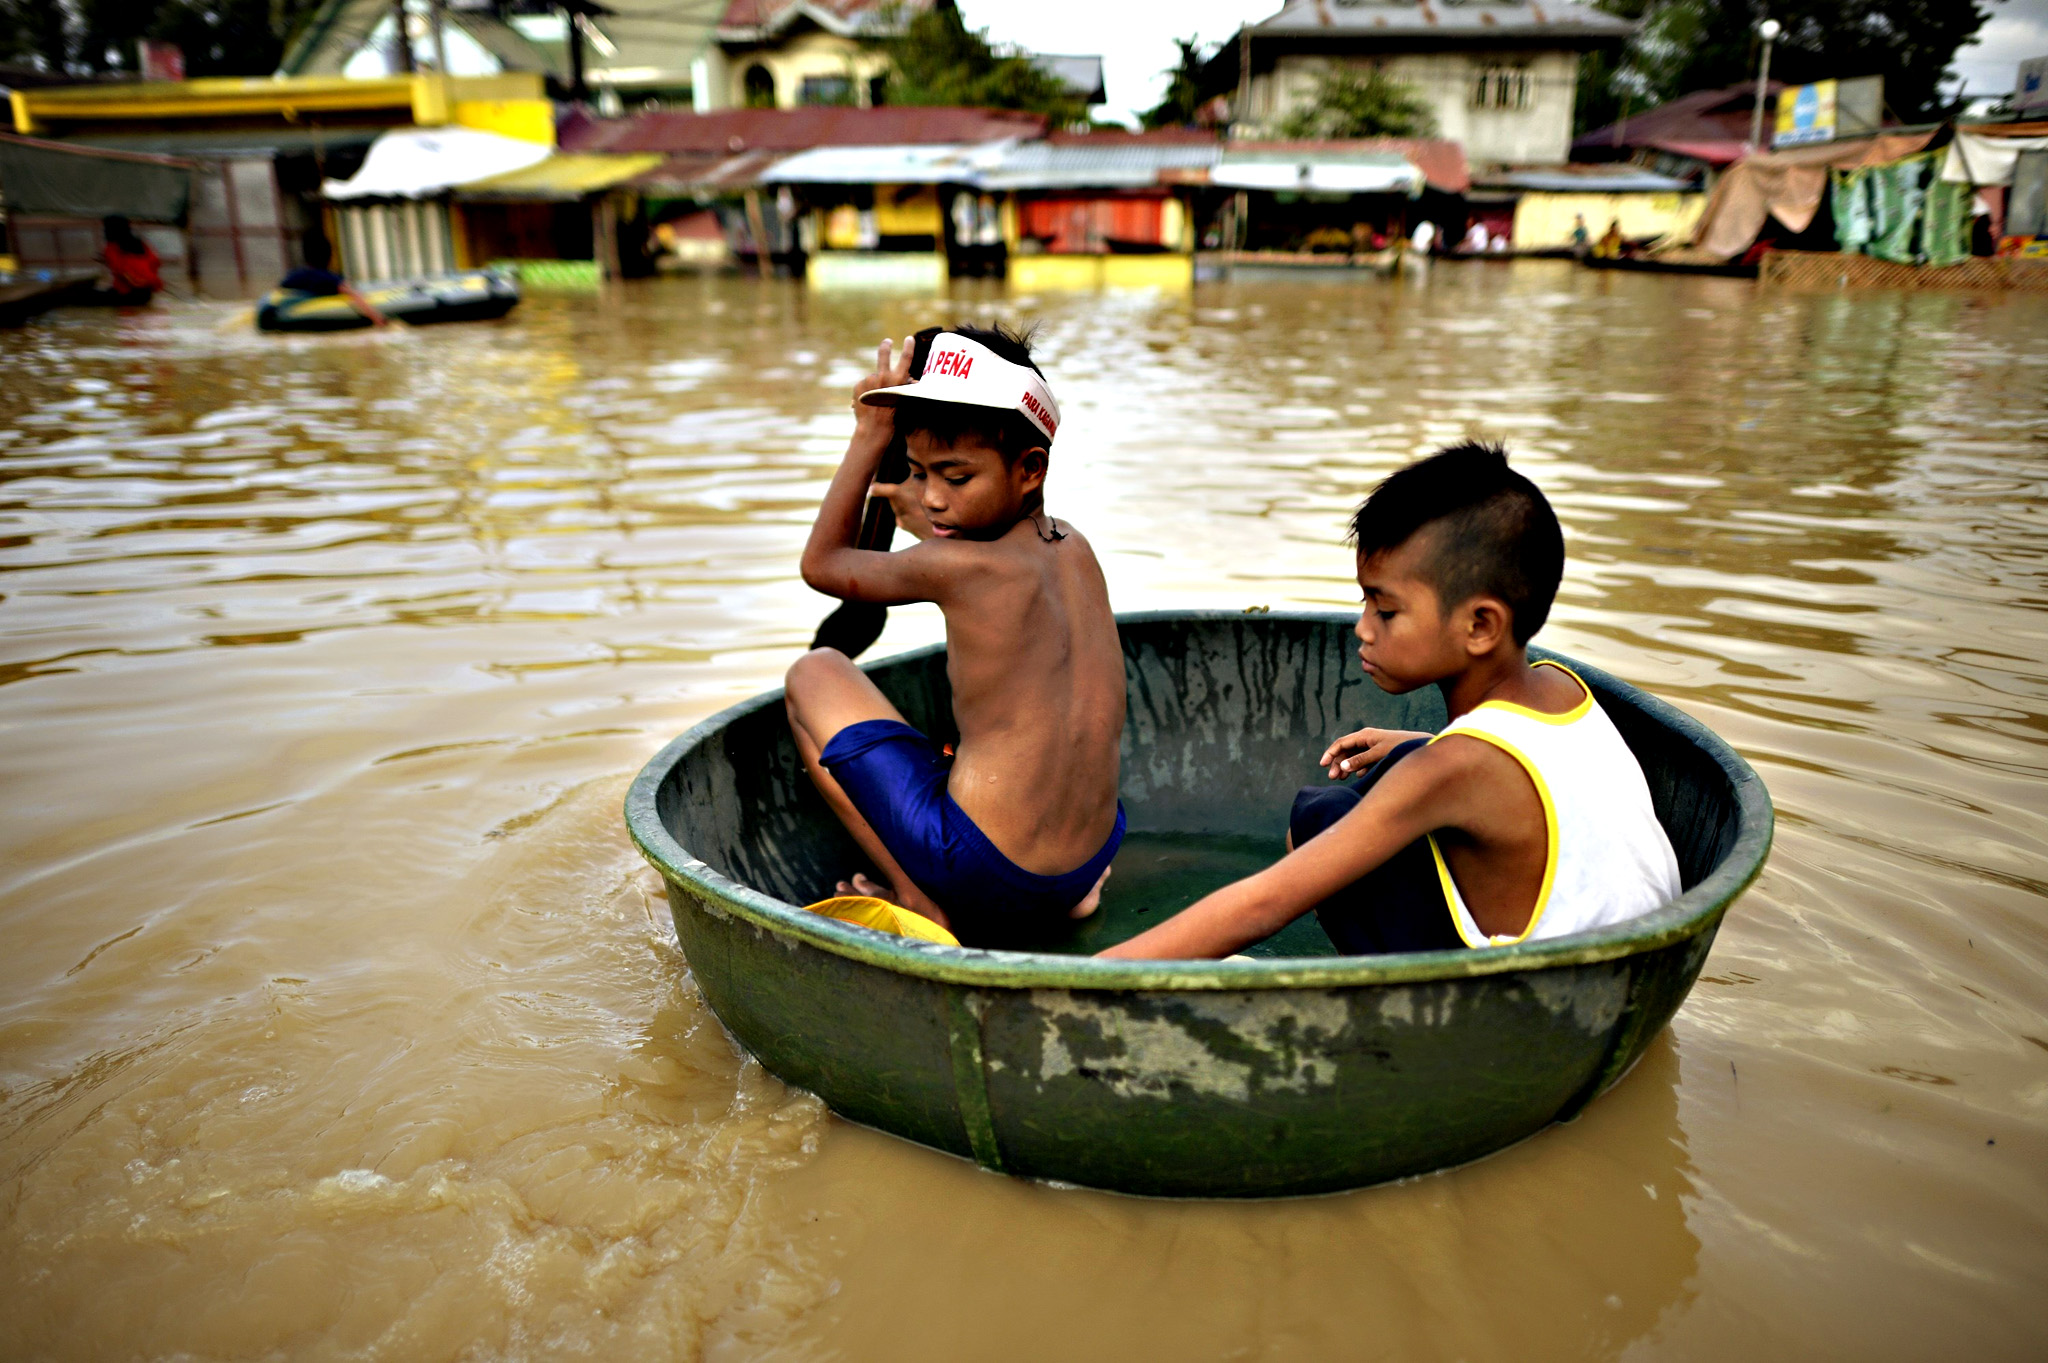 Children commute in a water basin at a flooded market in Candaba, Pampanga, north of Manila on Friday. Vast swathes of farmlands inundated by Typhoon Koppu in October were flooded again this week by rains from Typhoon Melor and the flooding could worsen or spread to other areas as a second storm in less than a week threatens the country.